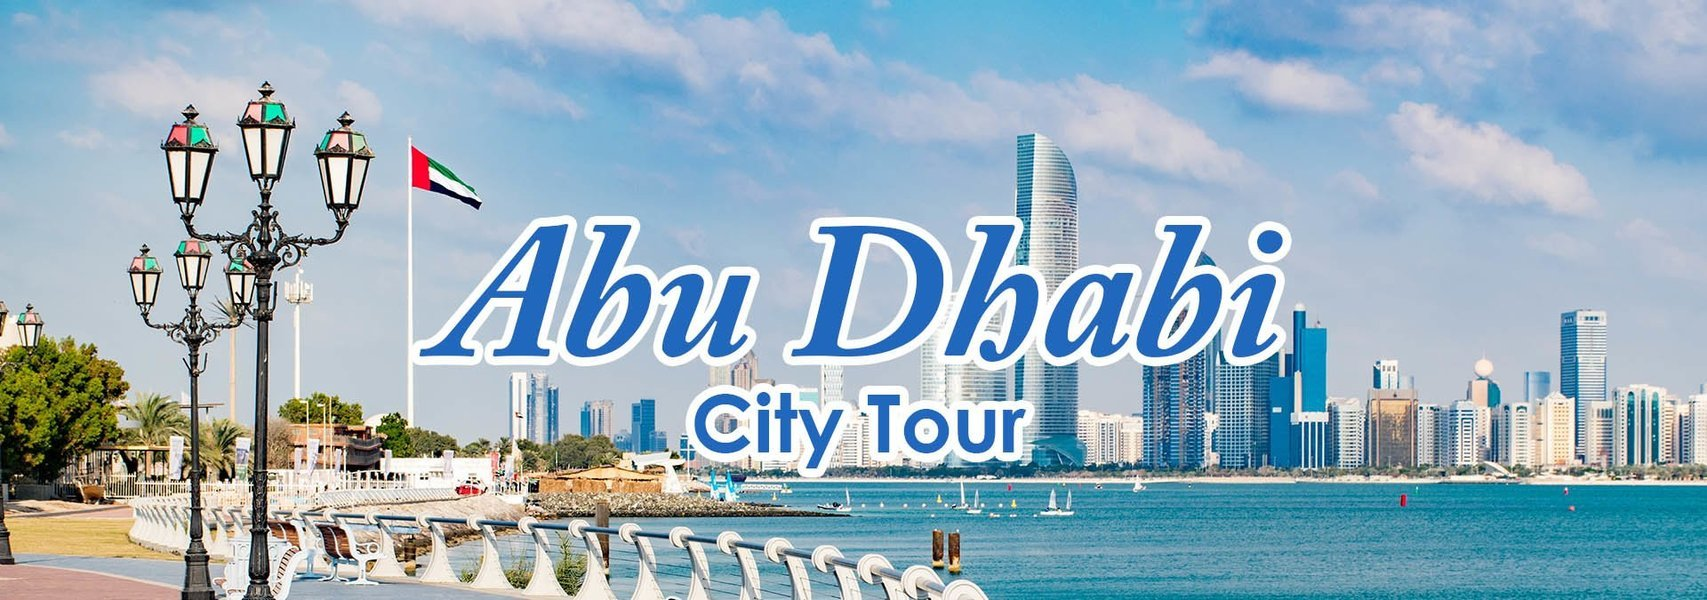 Abu Dhabi City Tour - Tour